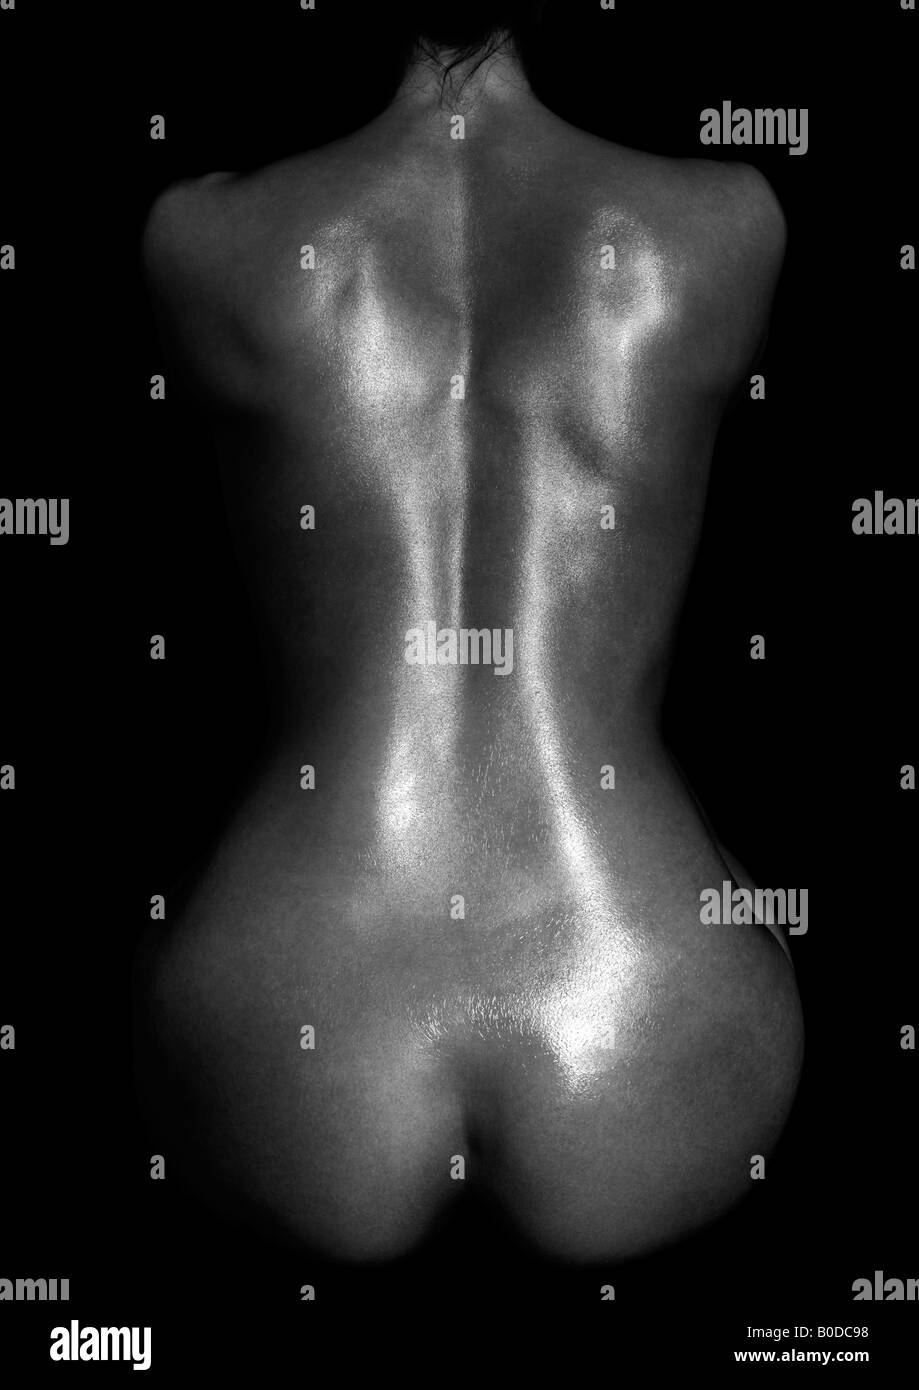 Think, hourglass figure nude